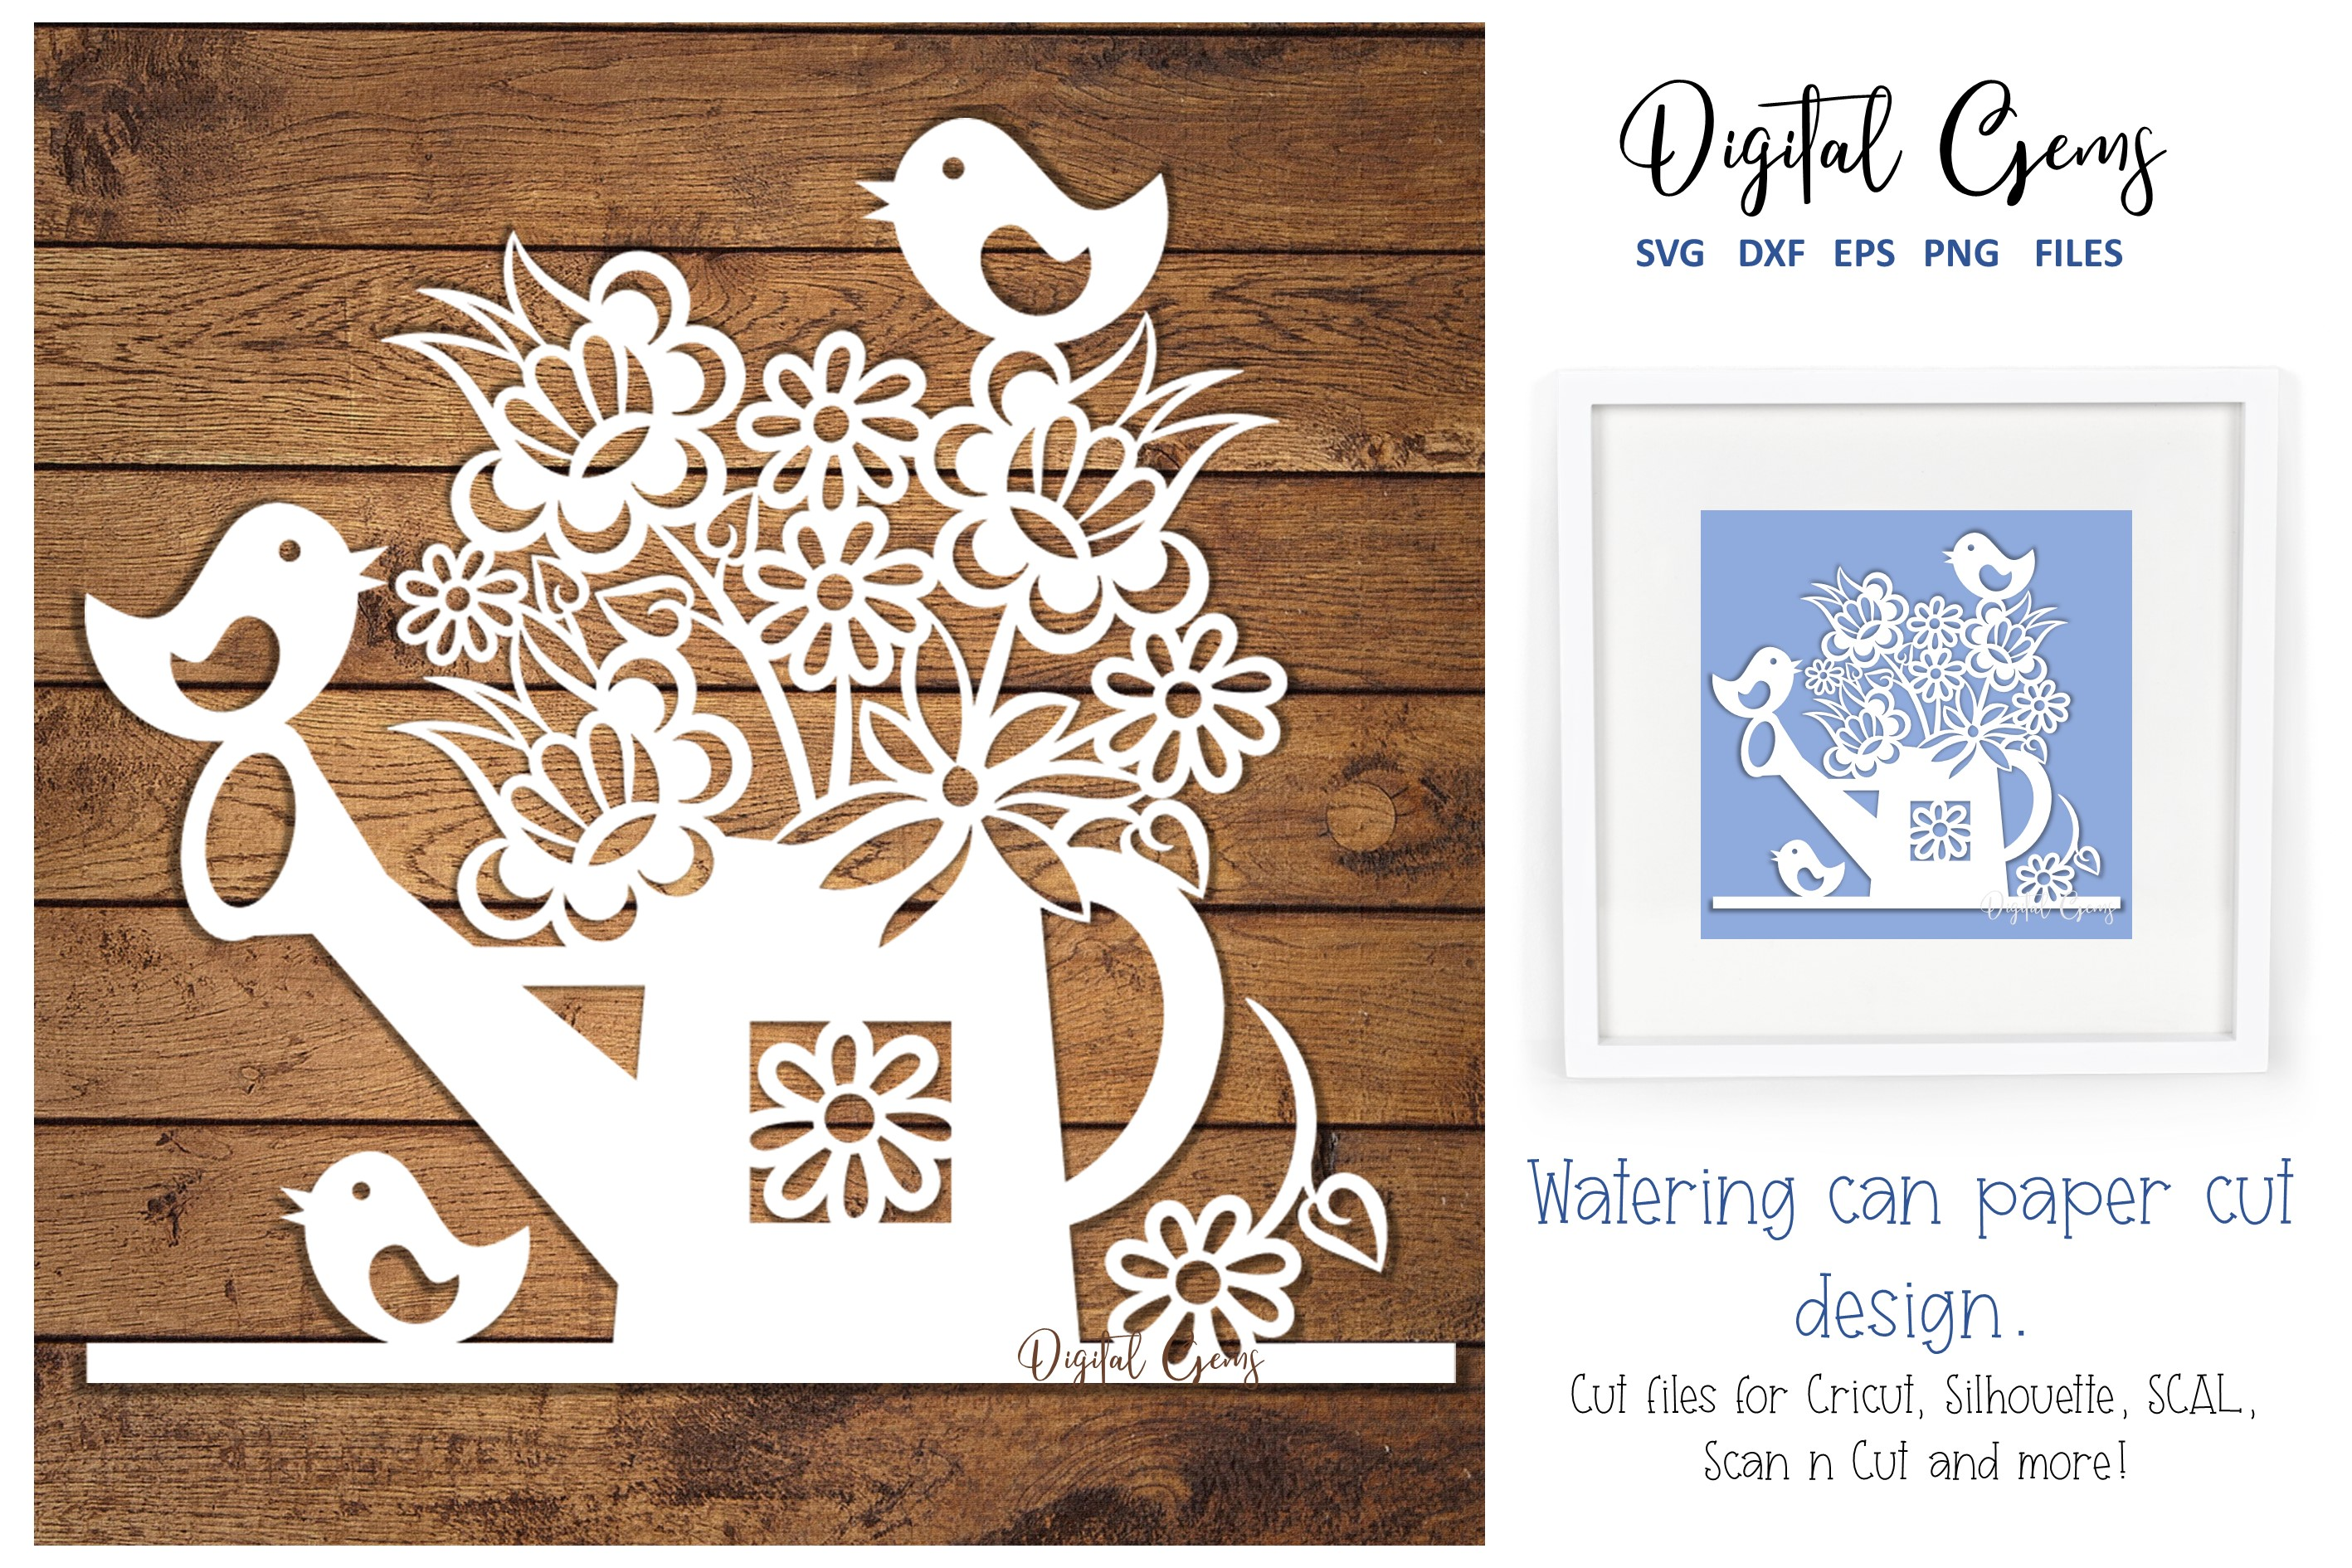 Download Free Watering Can Paper Cut Design Graphic By Digital Gems Creative for Cricut Explore, Silhouette and other cutting machines.